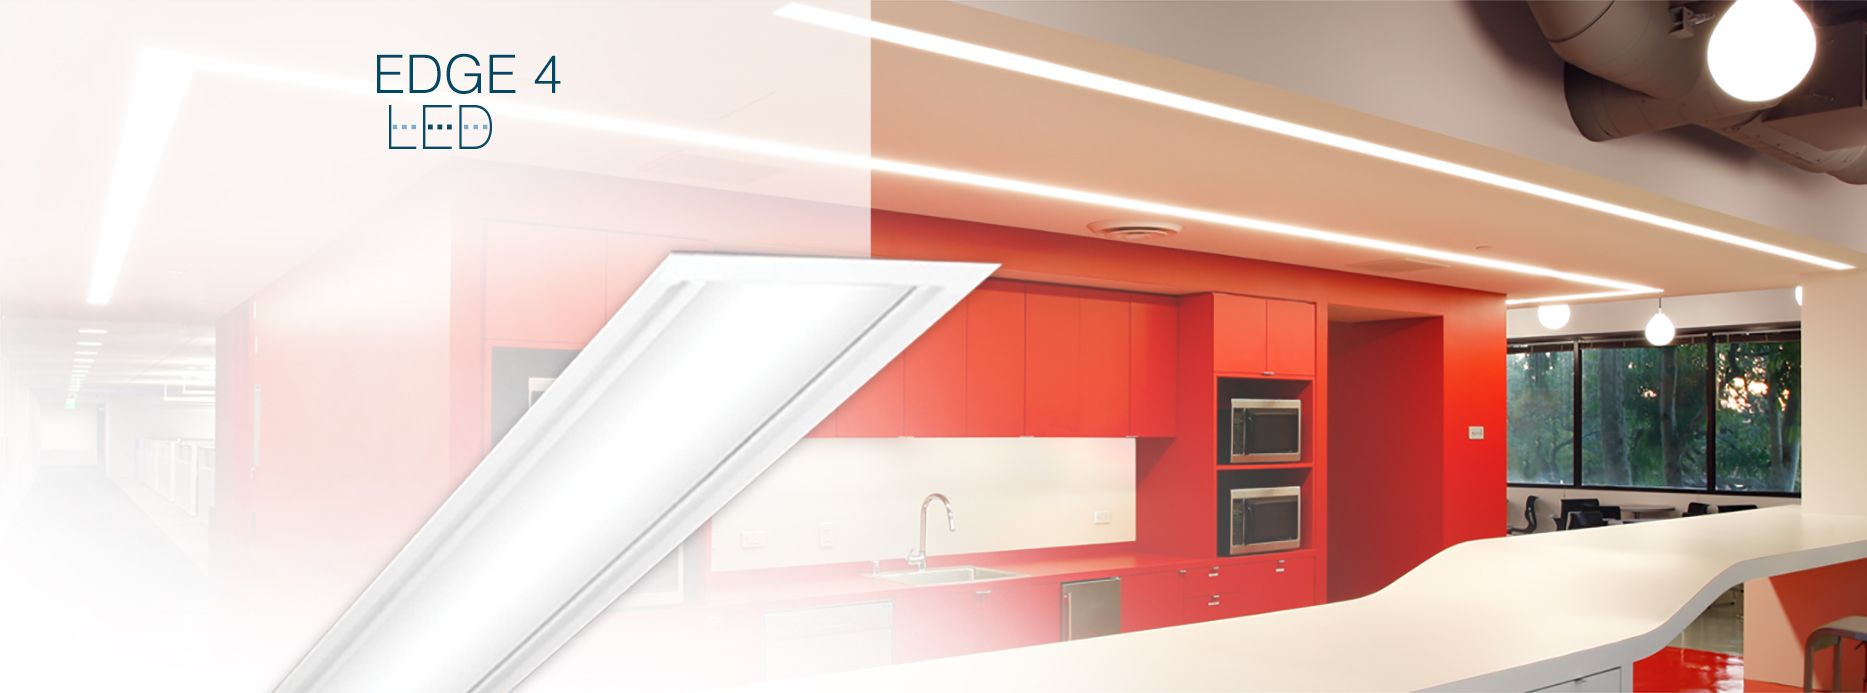 Edge 4 By Pinnacle Architectural Lighting 3 Aperture